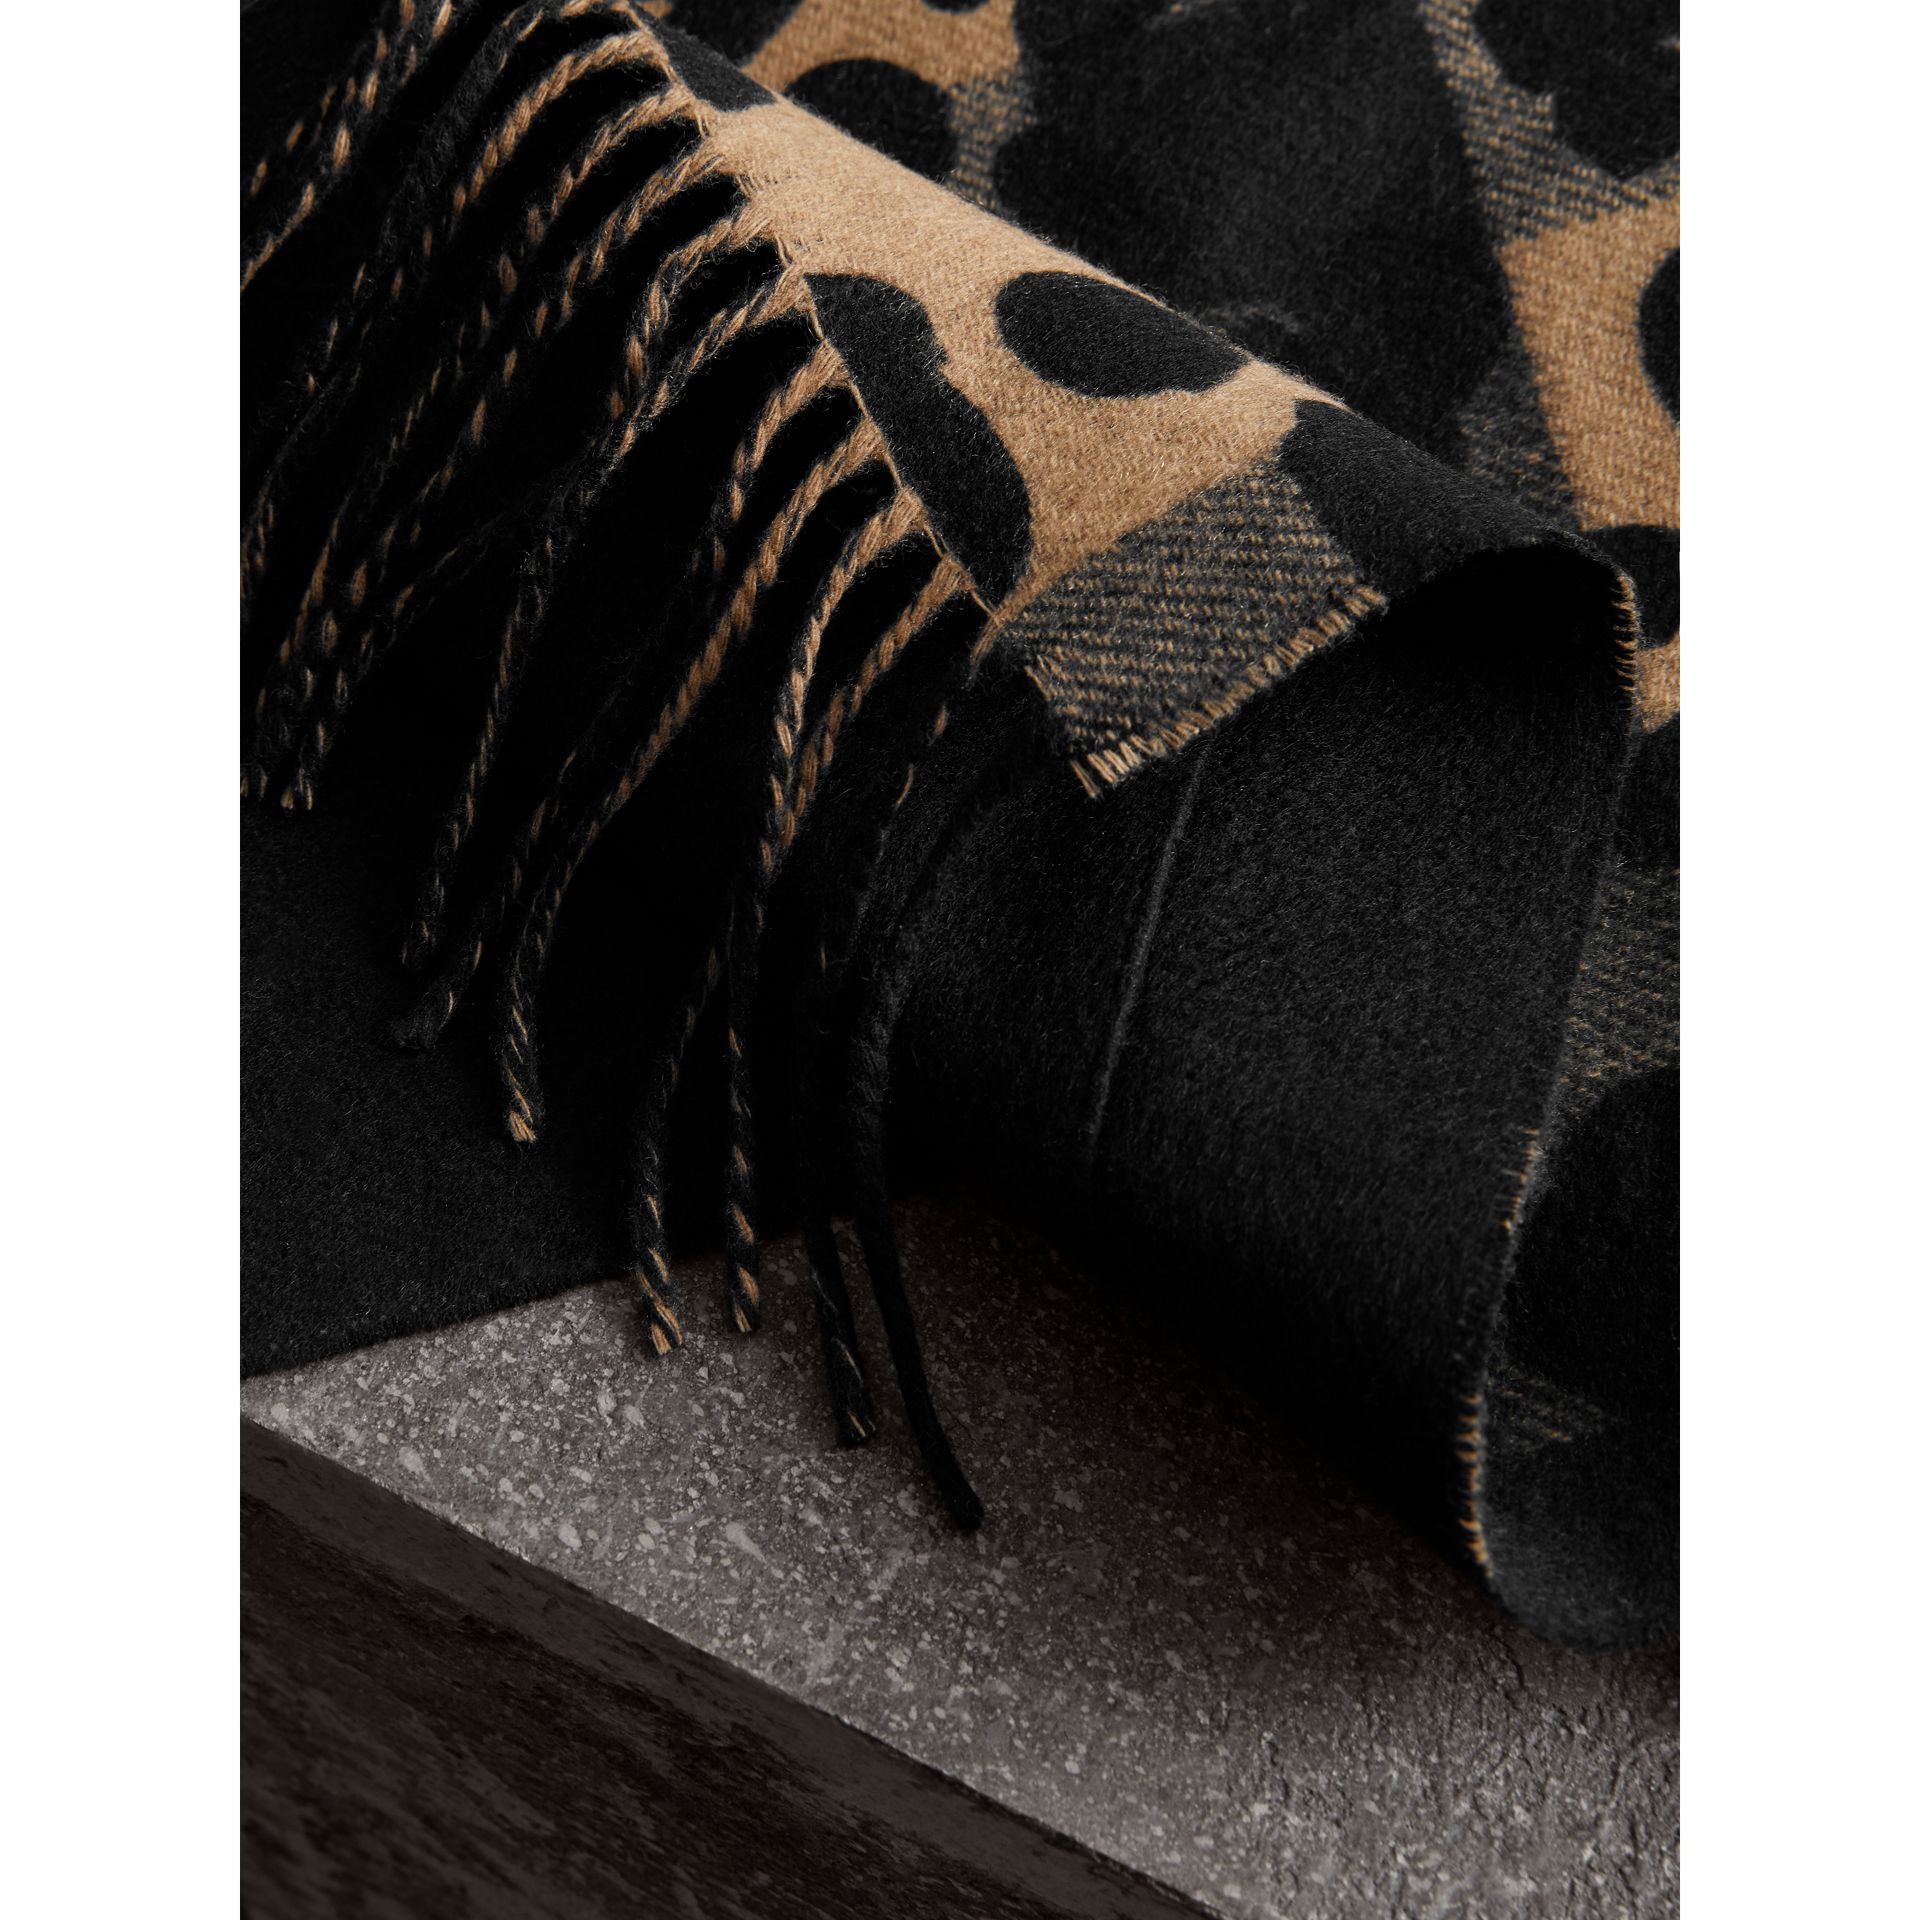 Animal Pattern Merino Wool Cashmere Stole in Camel - Women | Burberry - gallery image 1